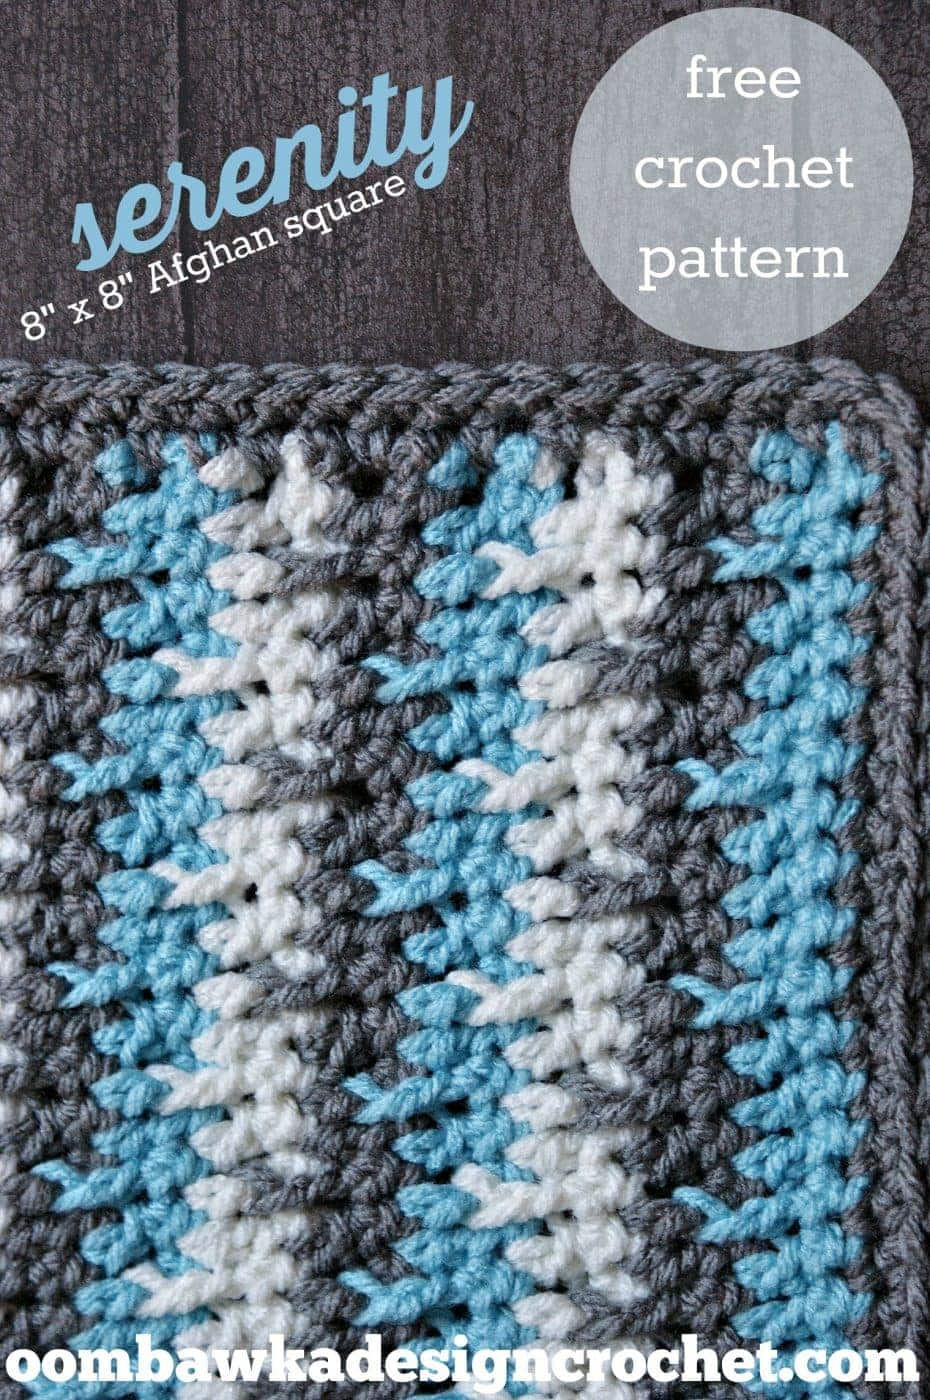 Beautiful 99 Crochet Post Stitches Review • Oombawka Design Crochet Crochet Post Stitch Of Incredible 45 Images Crochet Post Stitch